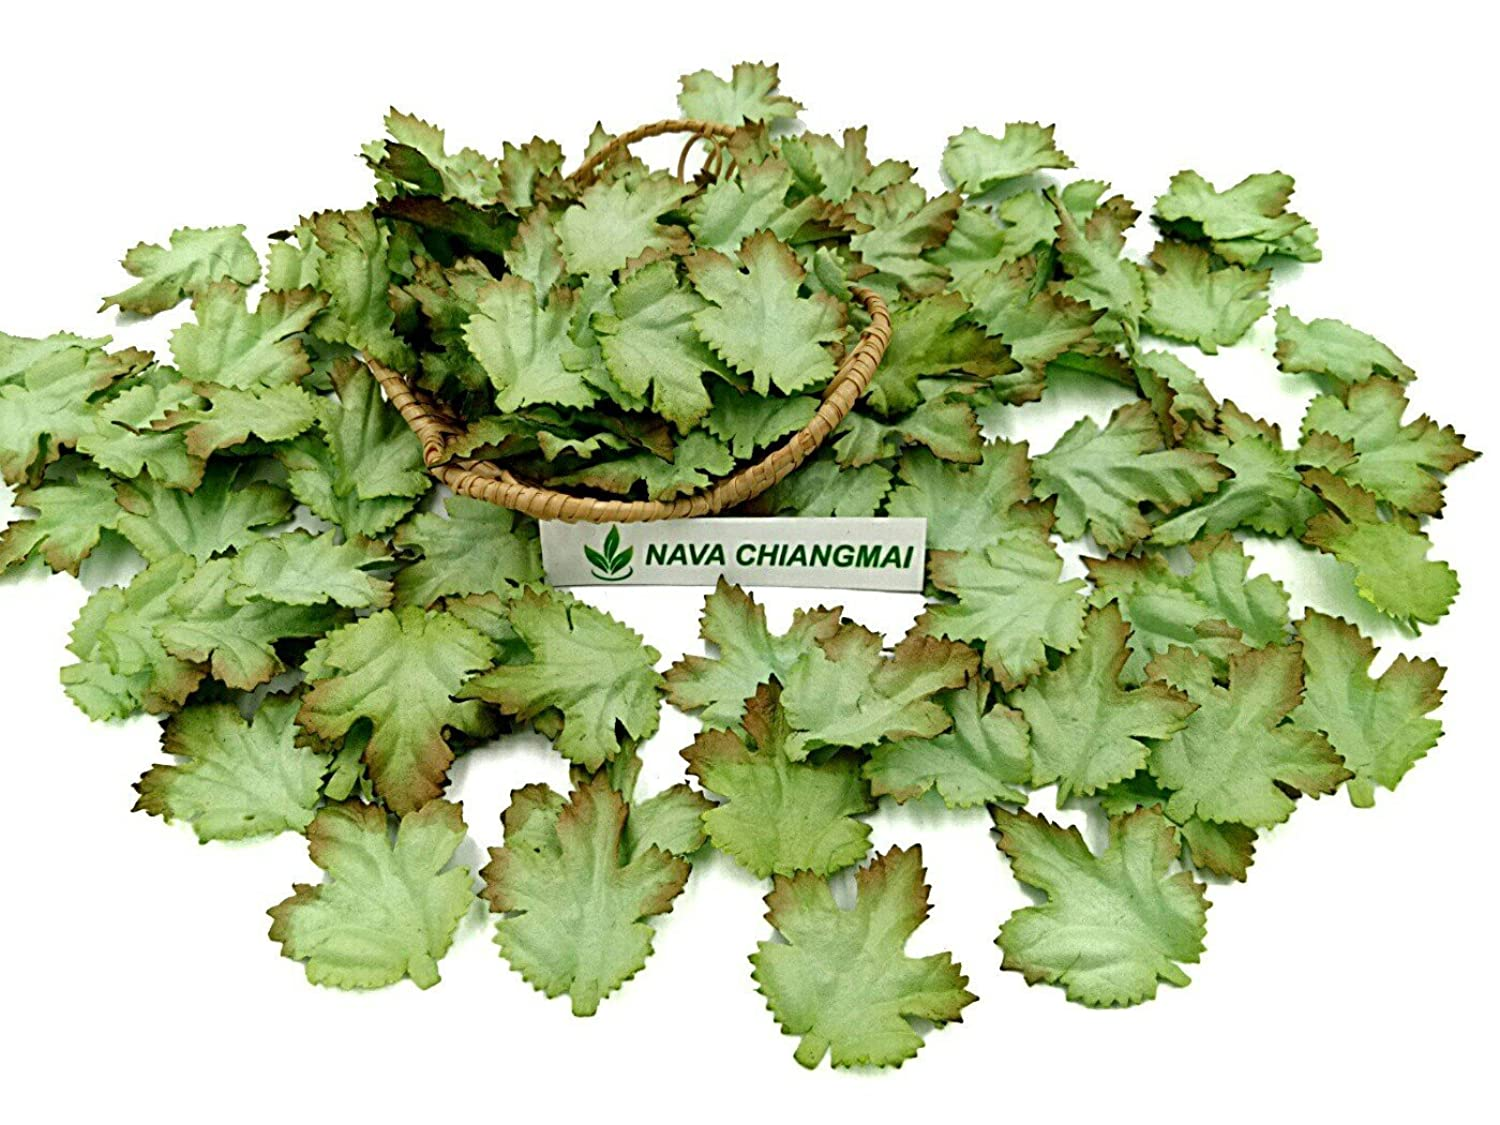 NAVA CHIANGMAI 100 pcs Mulberry Paper Maple Leaves Artificial Leaves Craft Leaves for Scrapbooking Wedding Doll House Supplies Card (Green Tone)